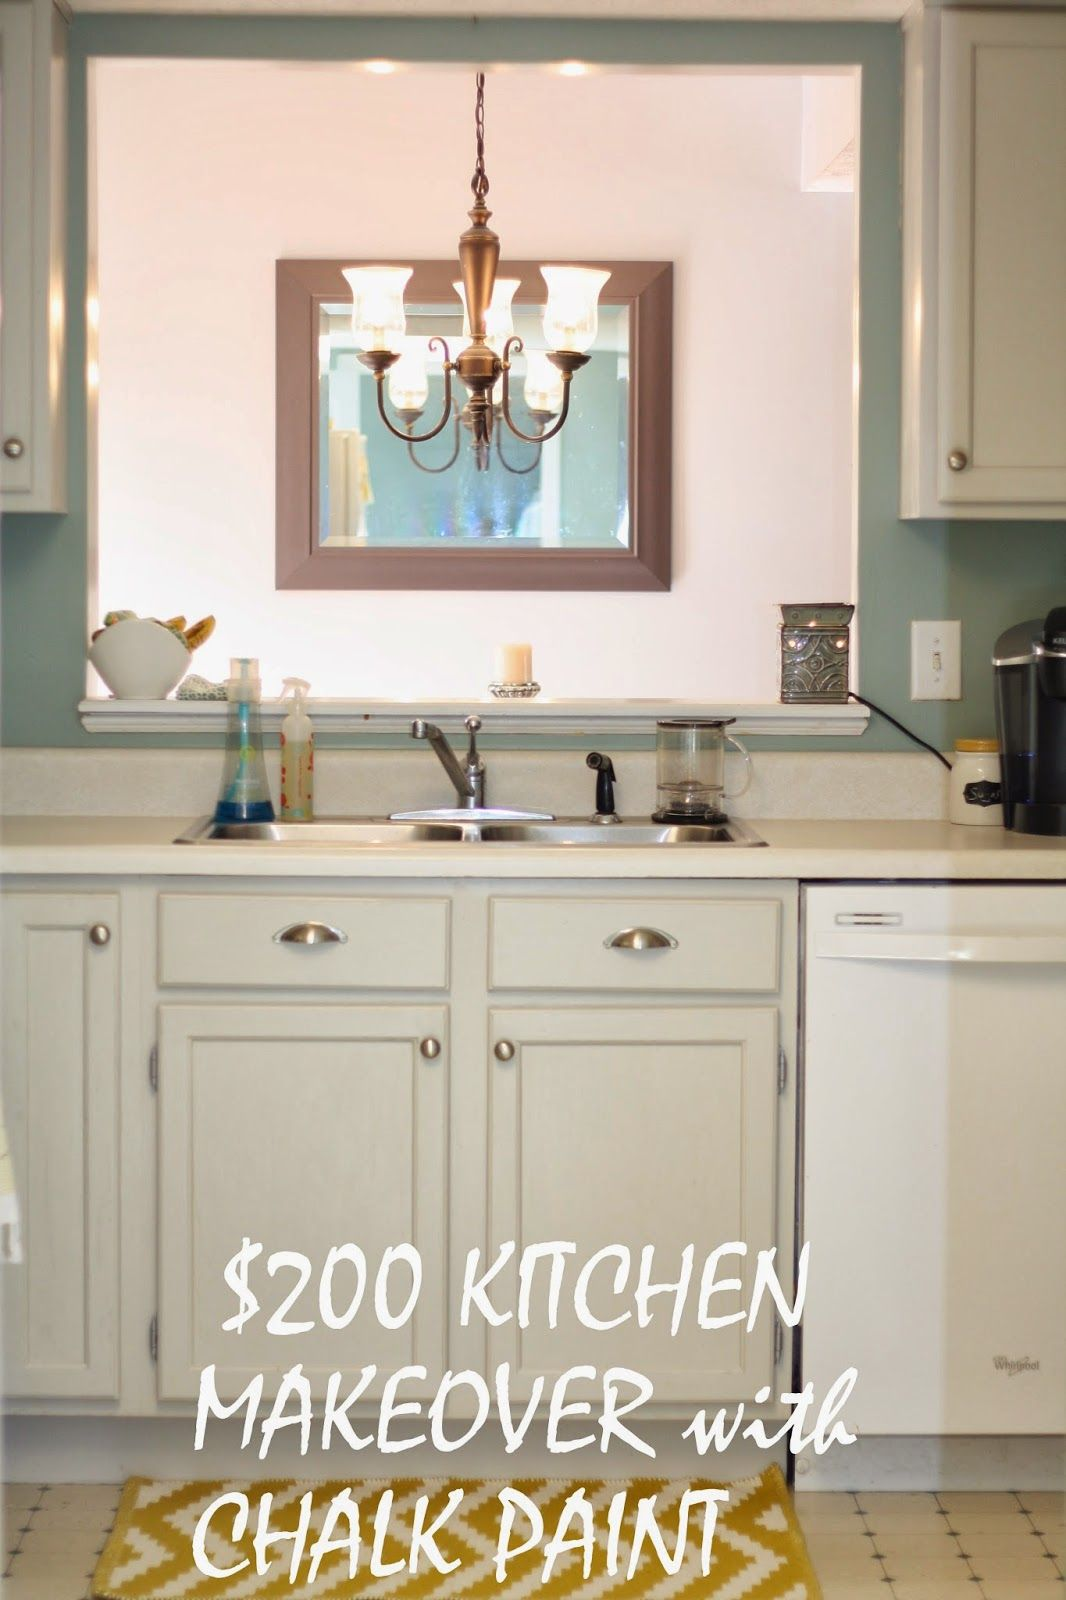 chalk paint kitchen cabinets with maison blanche in silver mink chalk paint kitchen cabinets with maison blanche in silver mink no priming no sanding